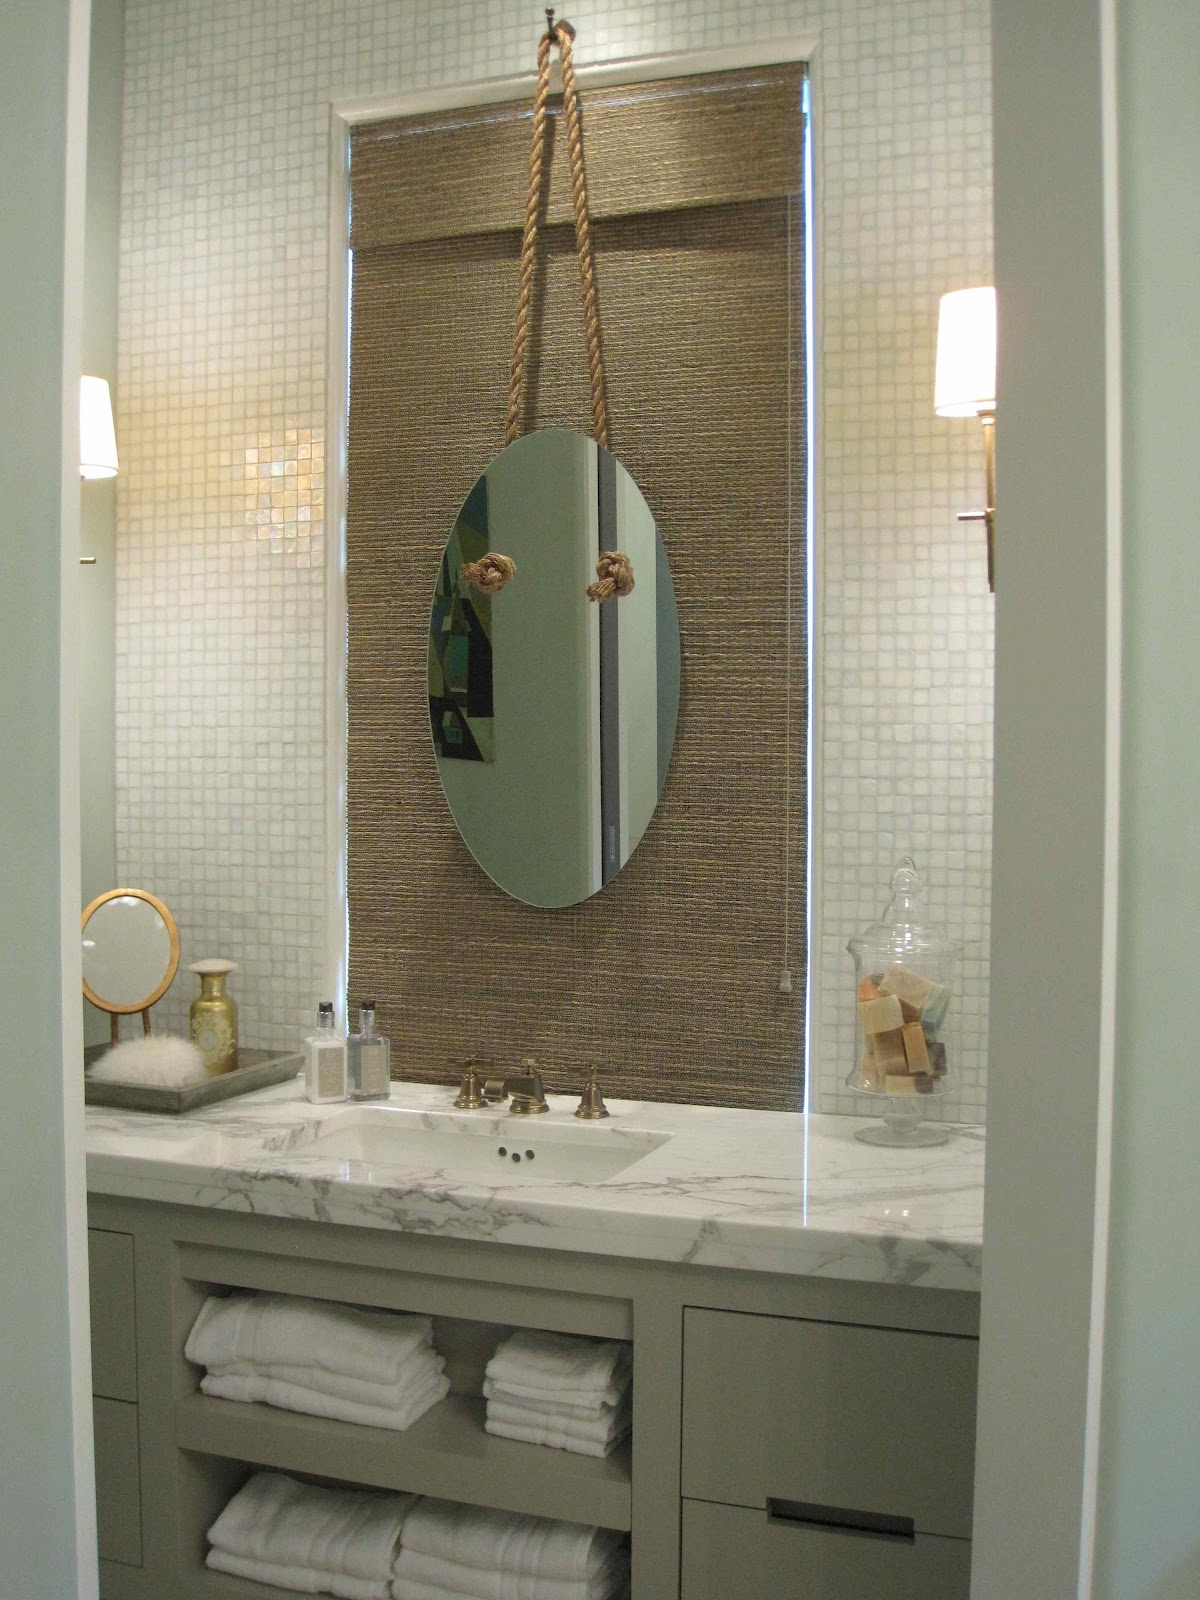 Tour of coastal living 39 s 2012 ultimate beach house for Bathroom decor 2012